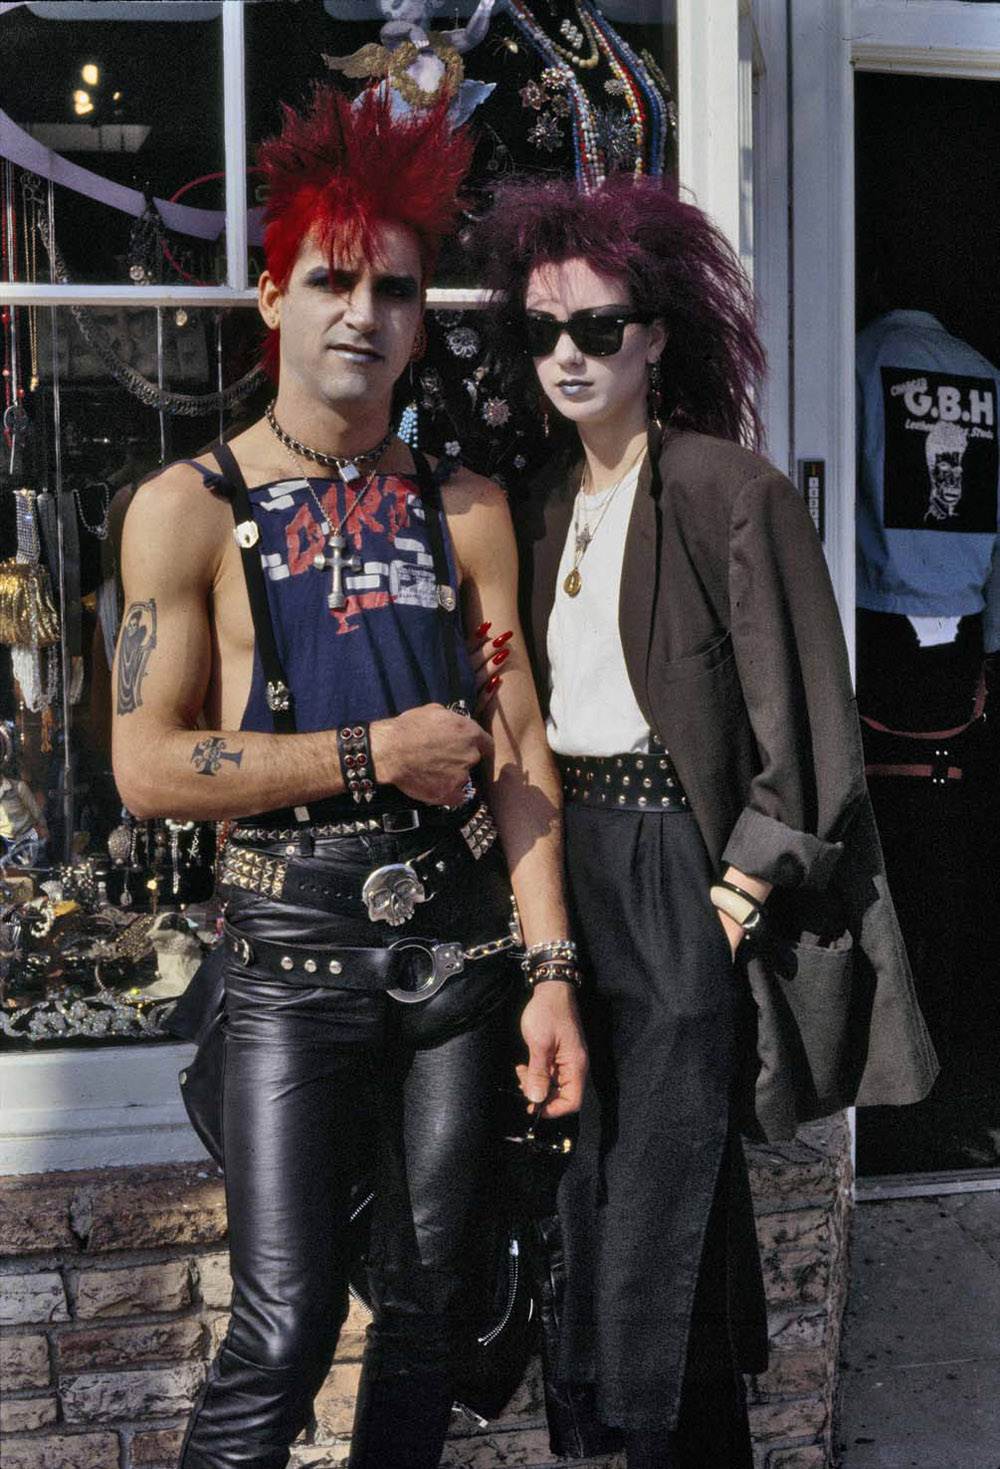 Alice Springs, Melrose Avenue, Los Angeles, 1984, Copyright Alice Springs